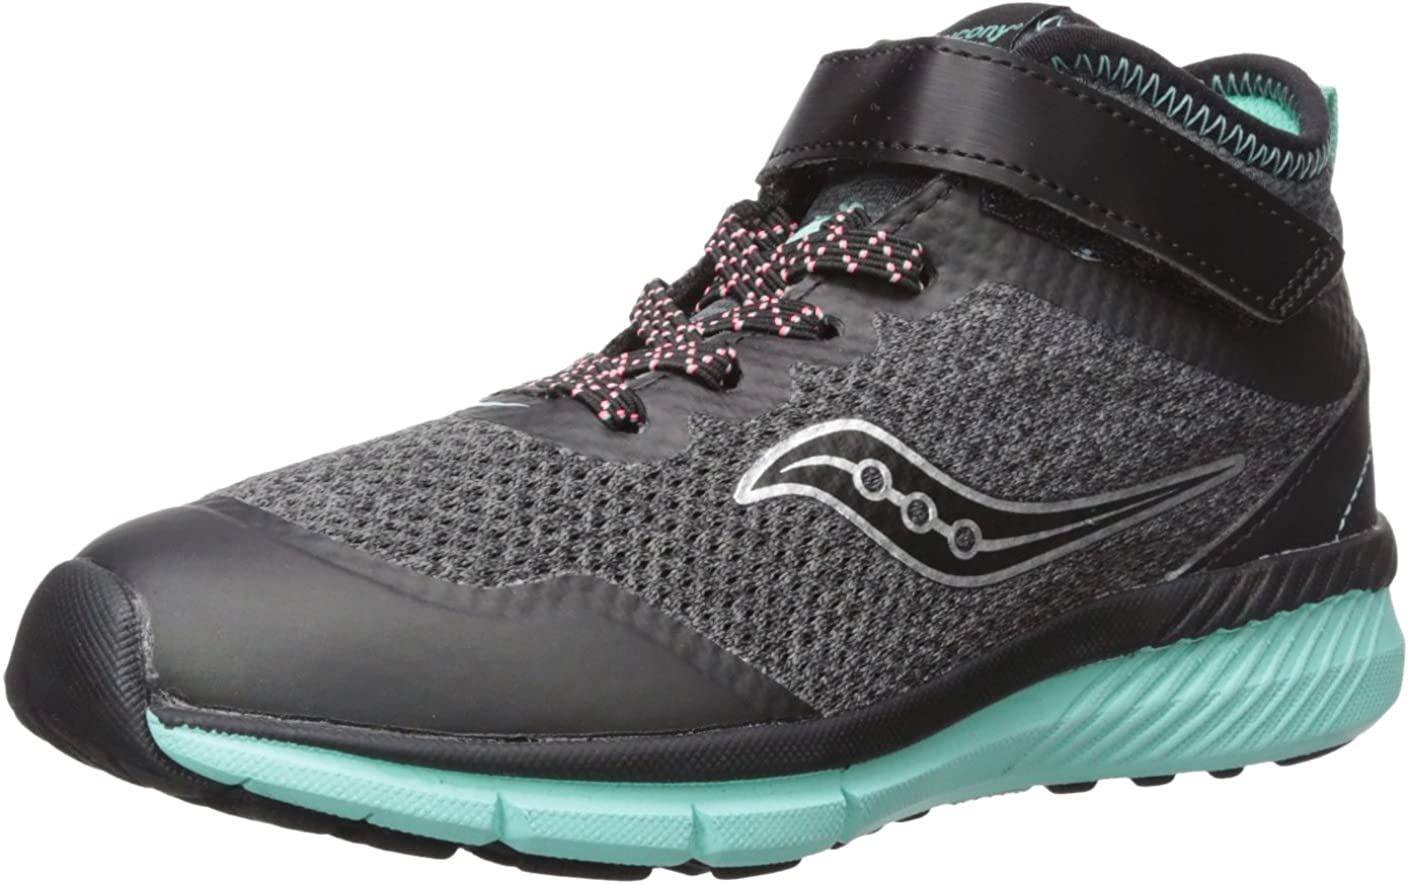 saucony steel toe shoes, OFF 74%,Free